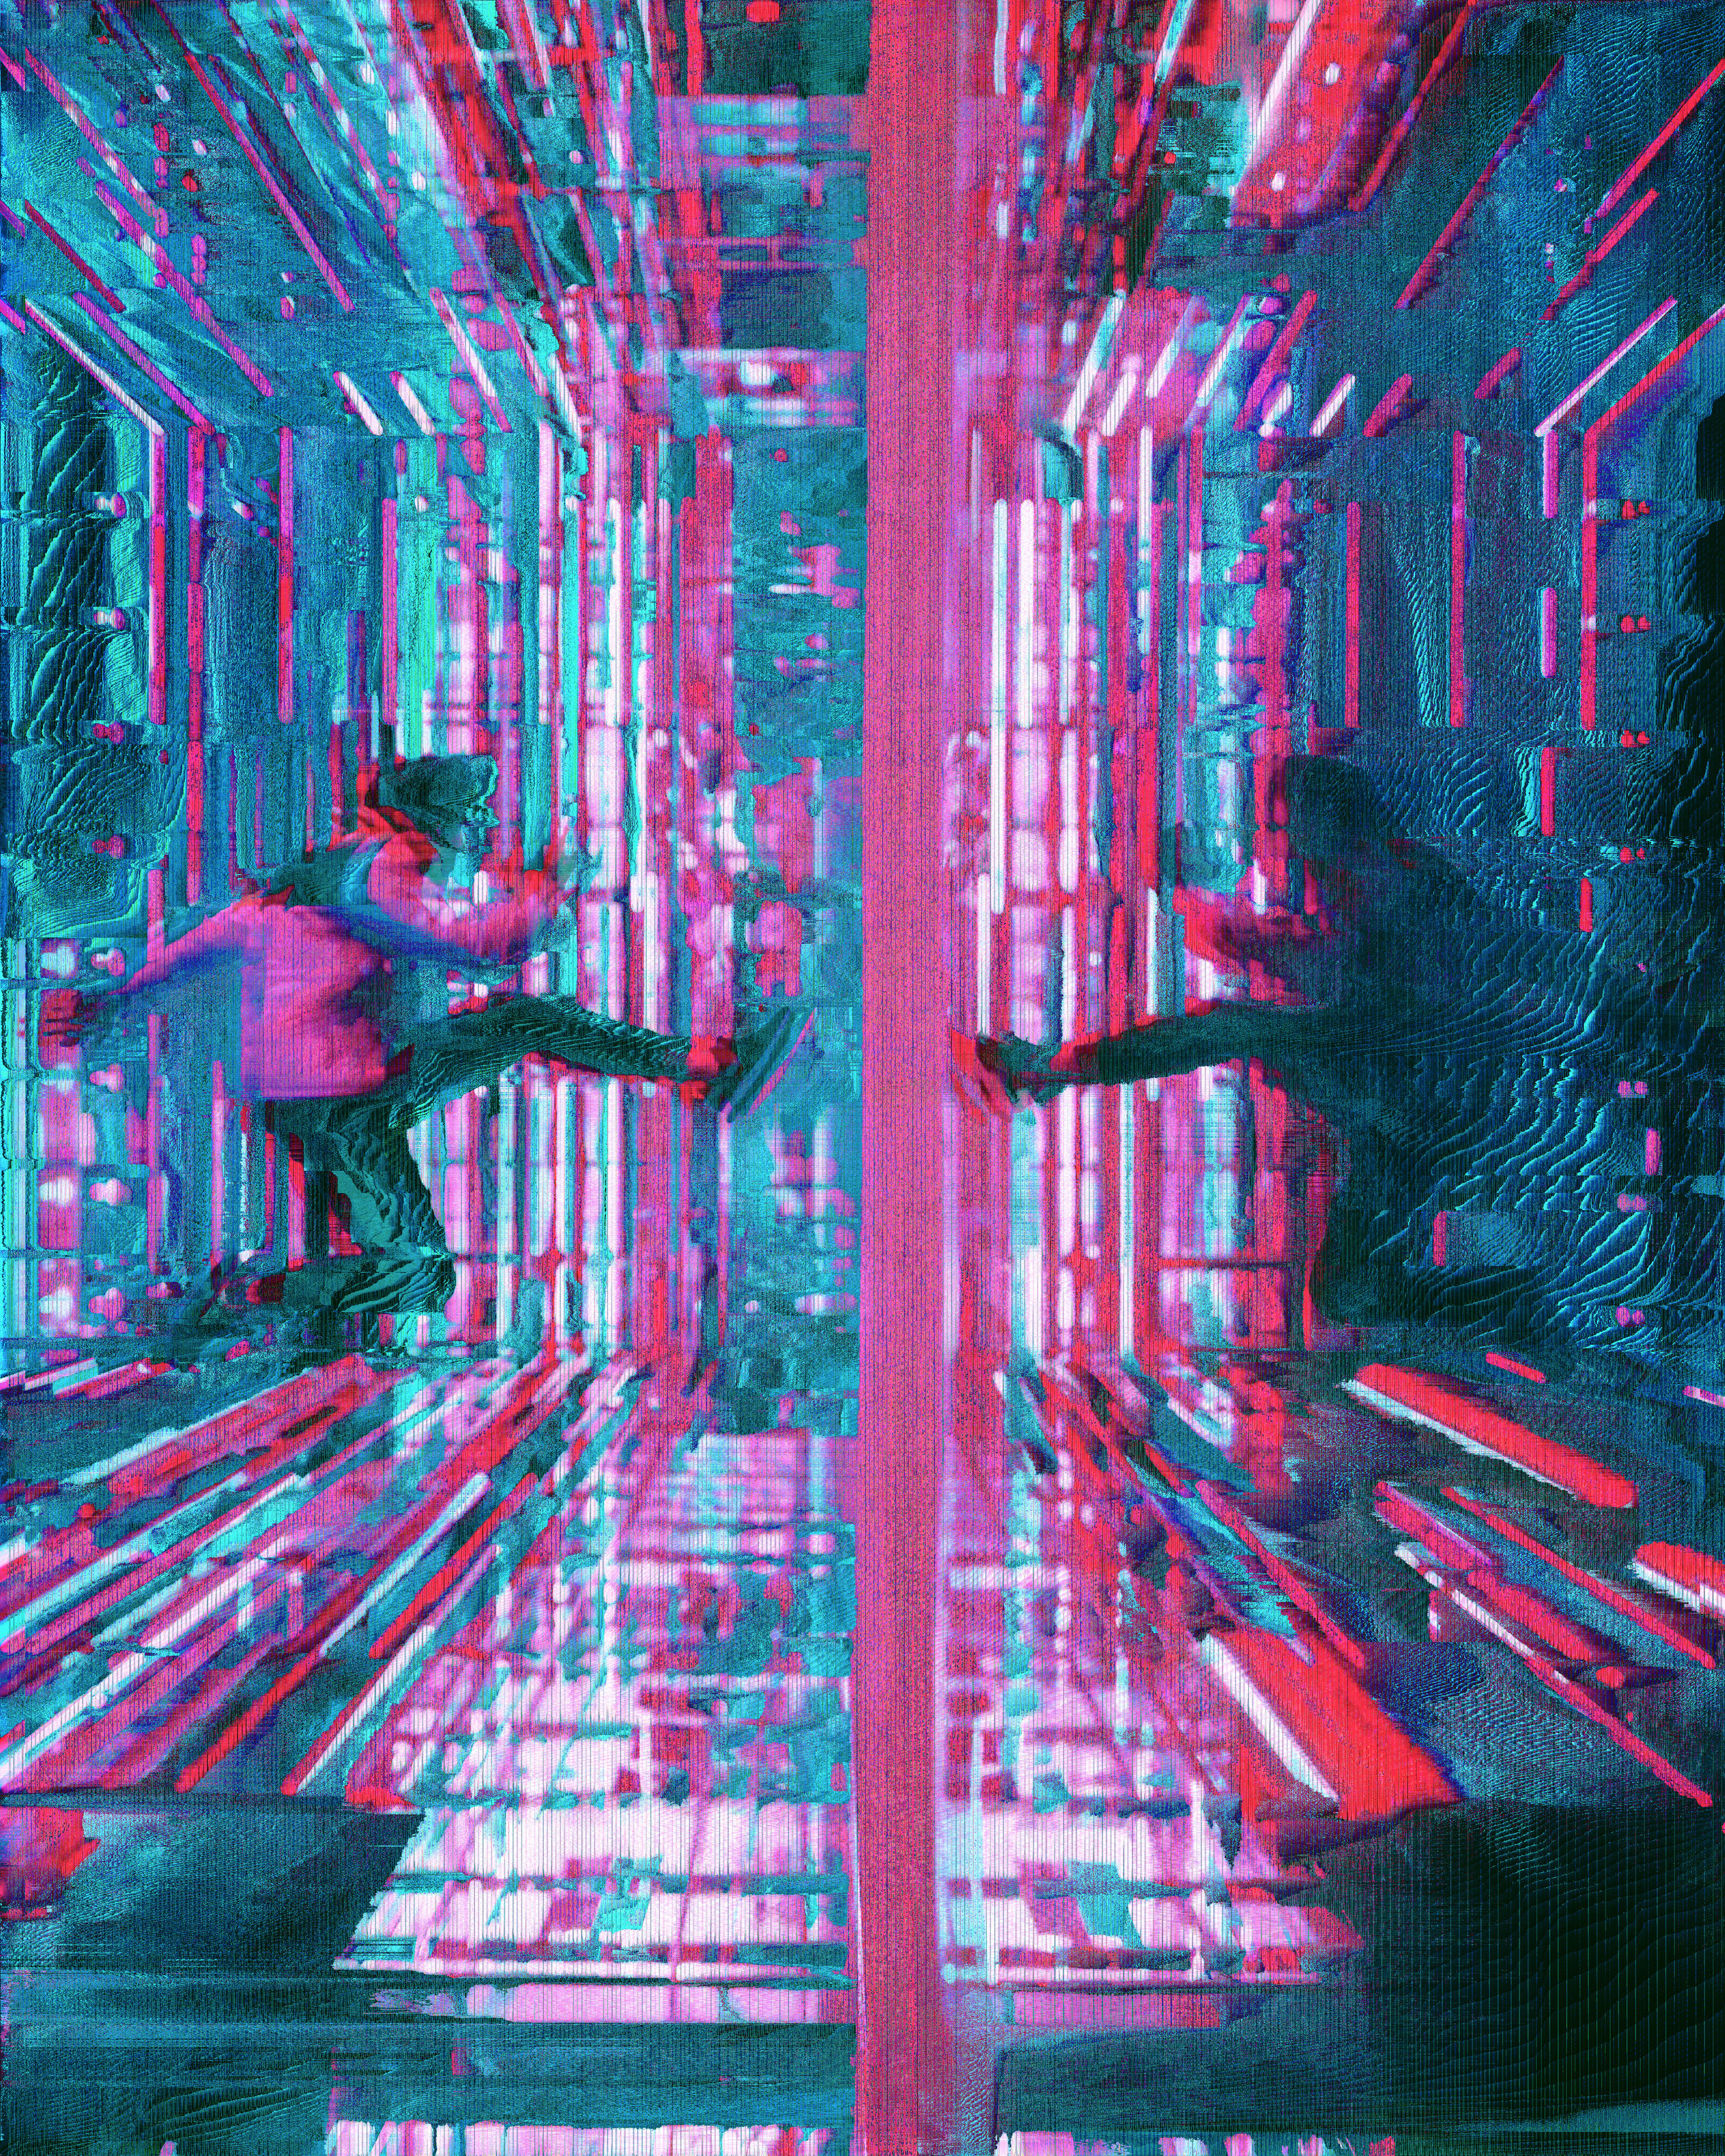 anaglych_28